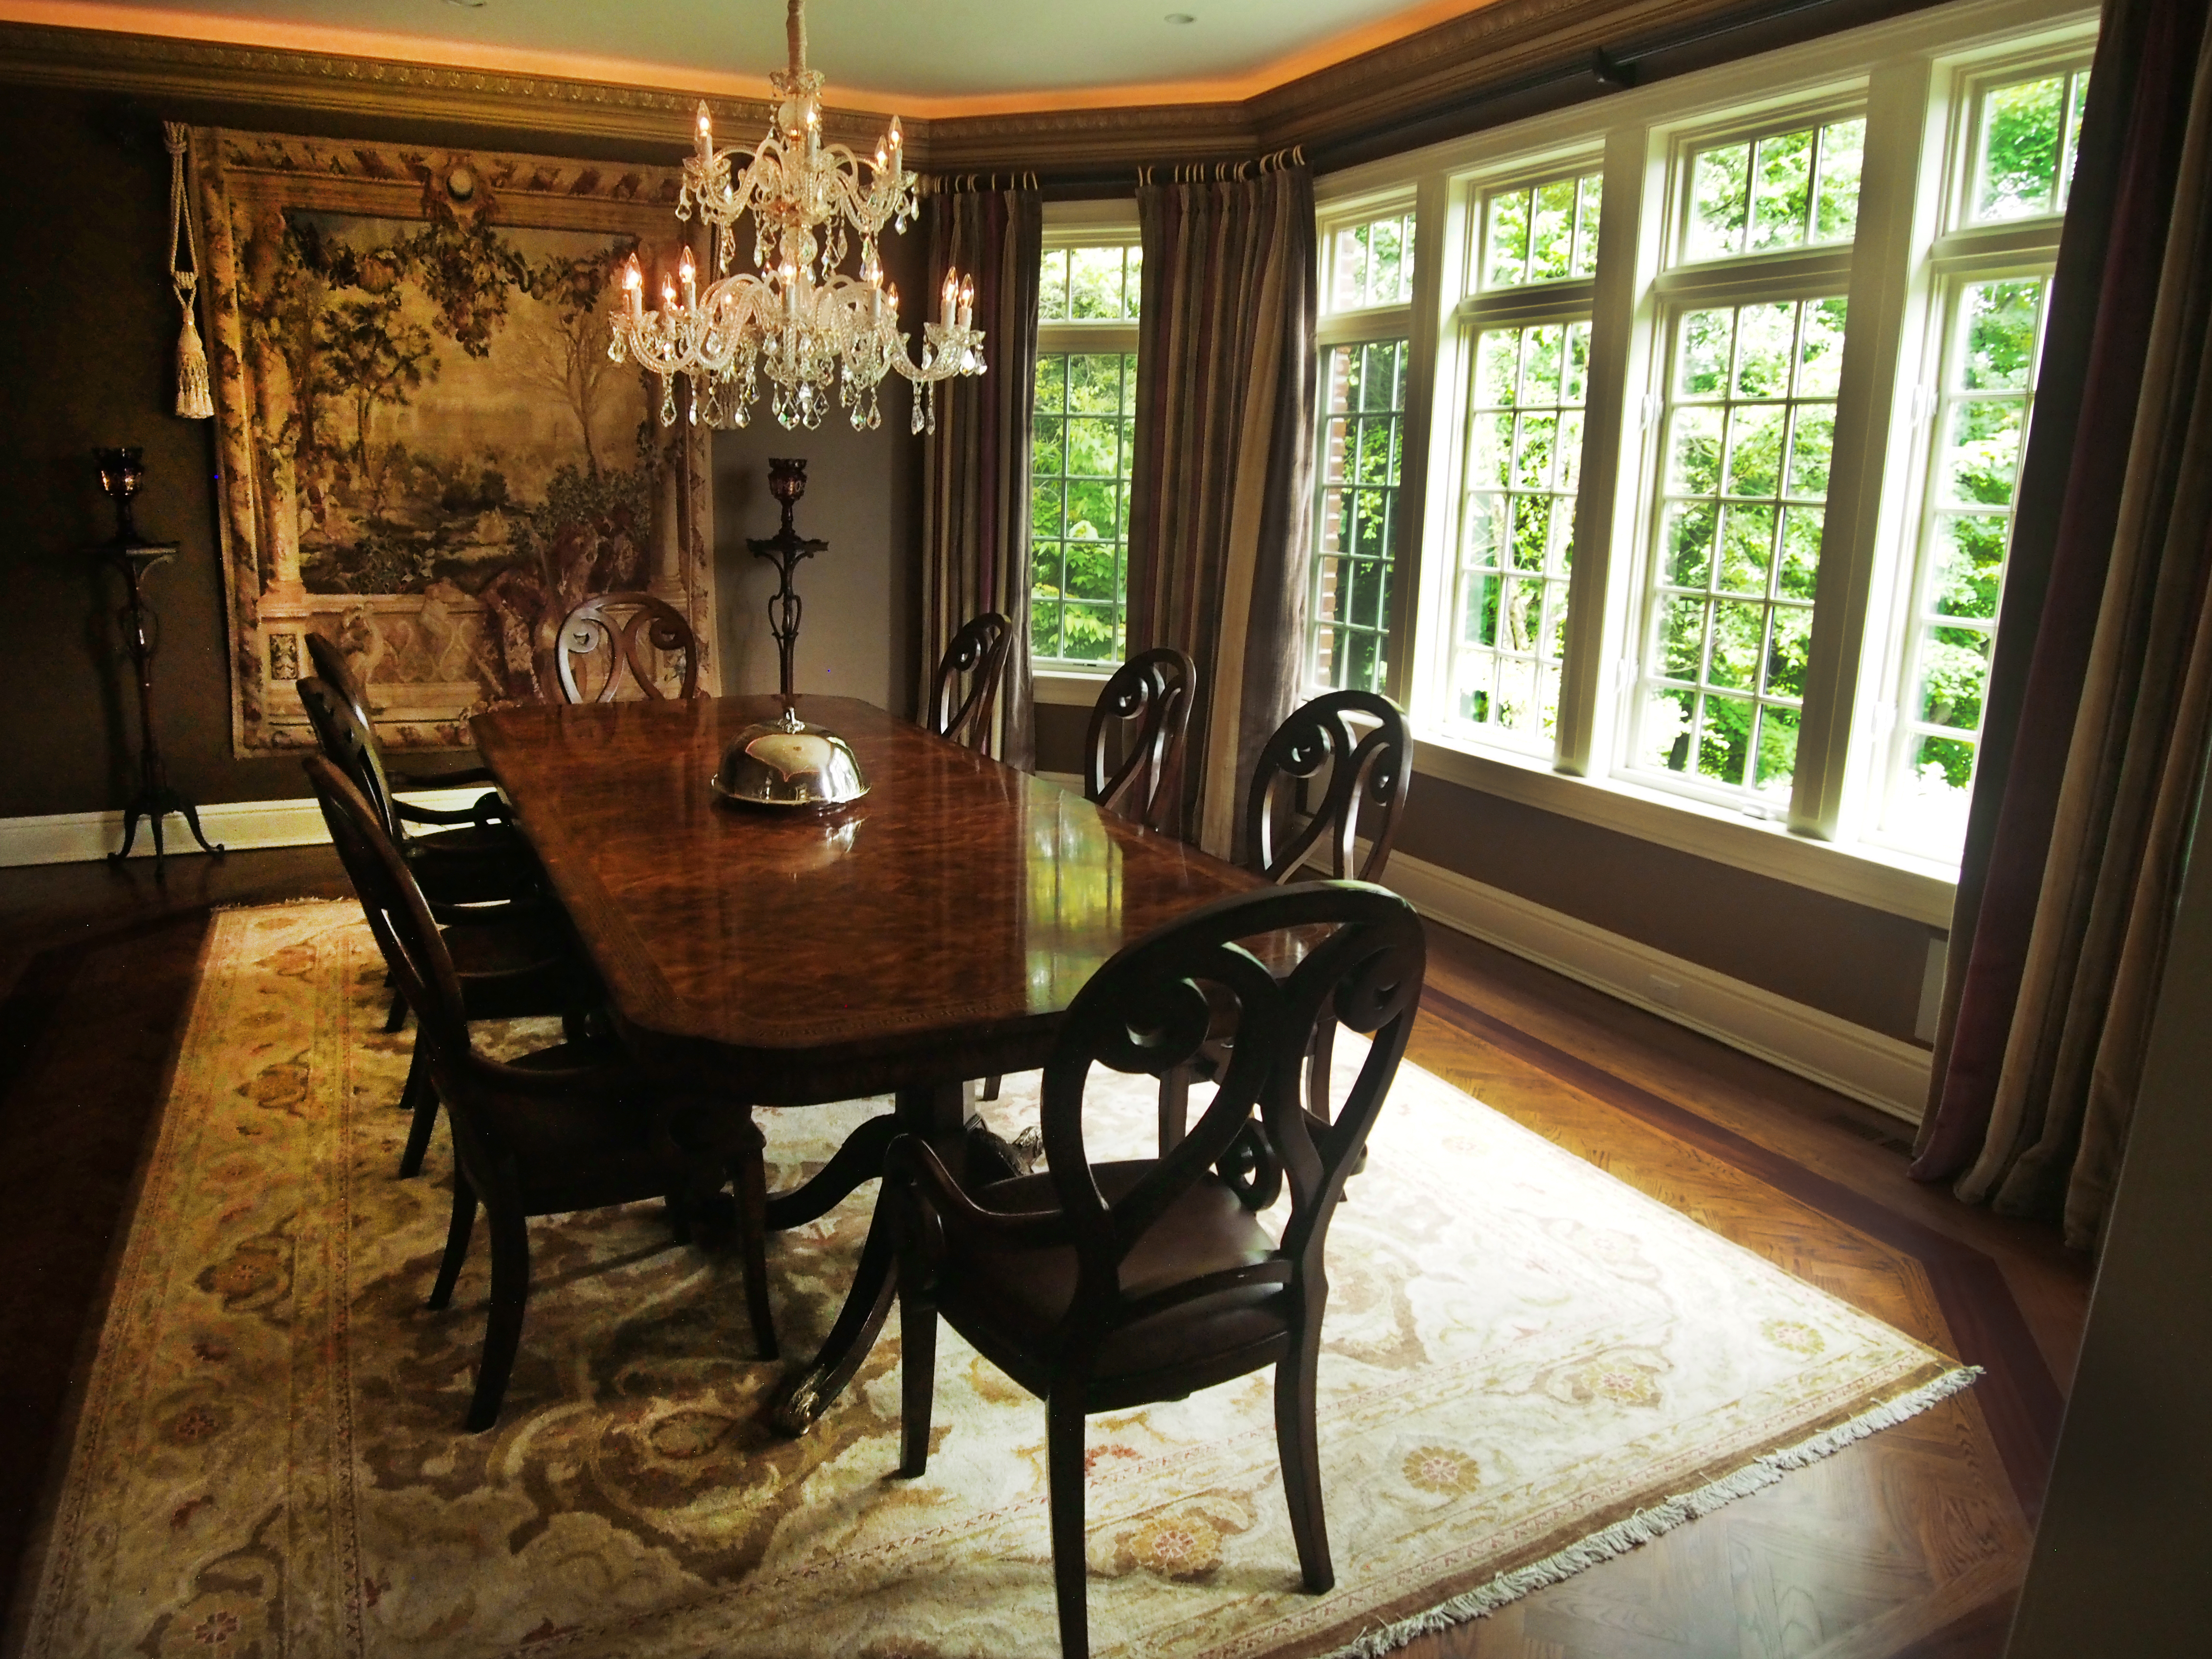 Stately in Armonk, The Dining Room